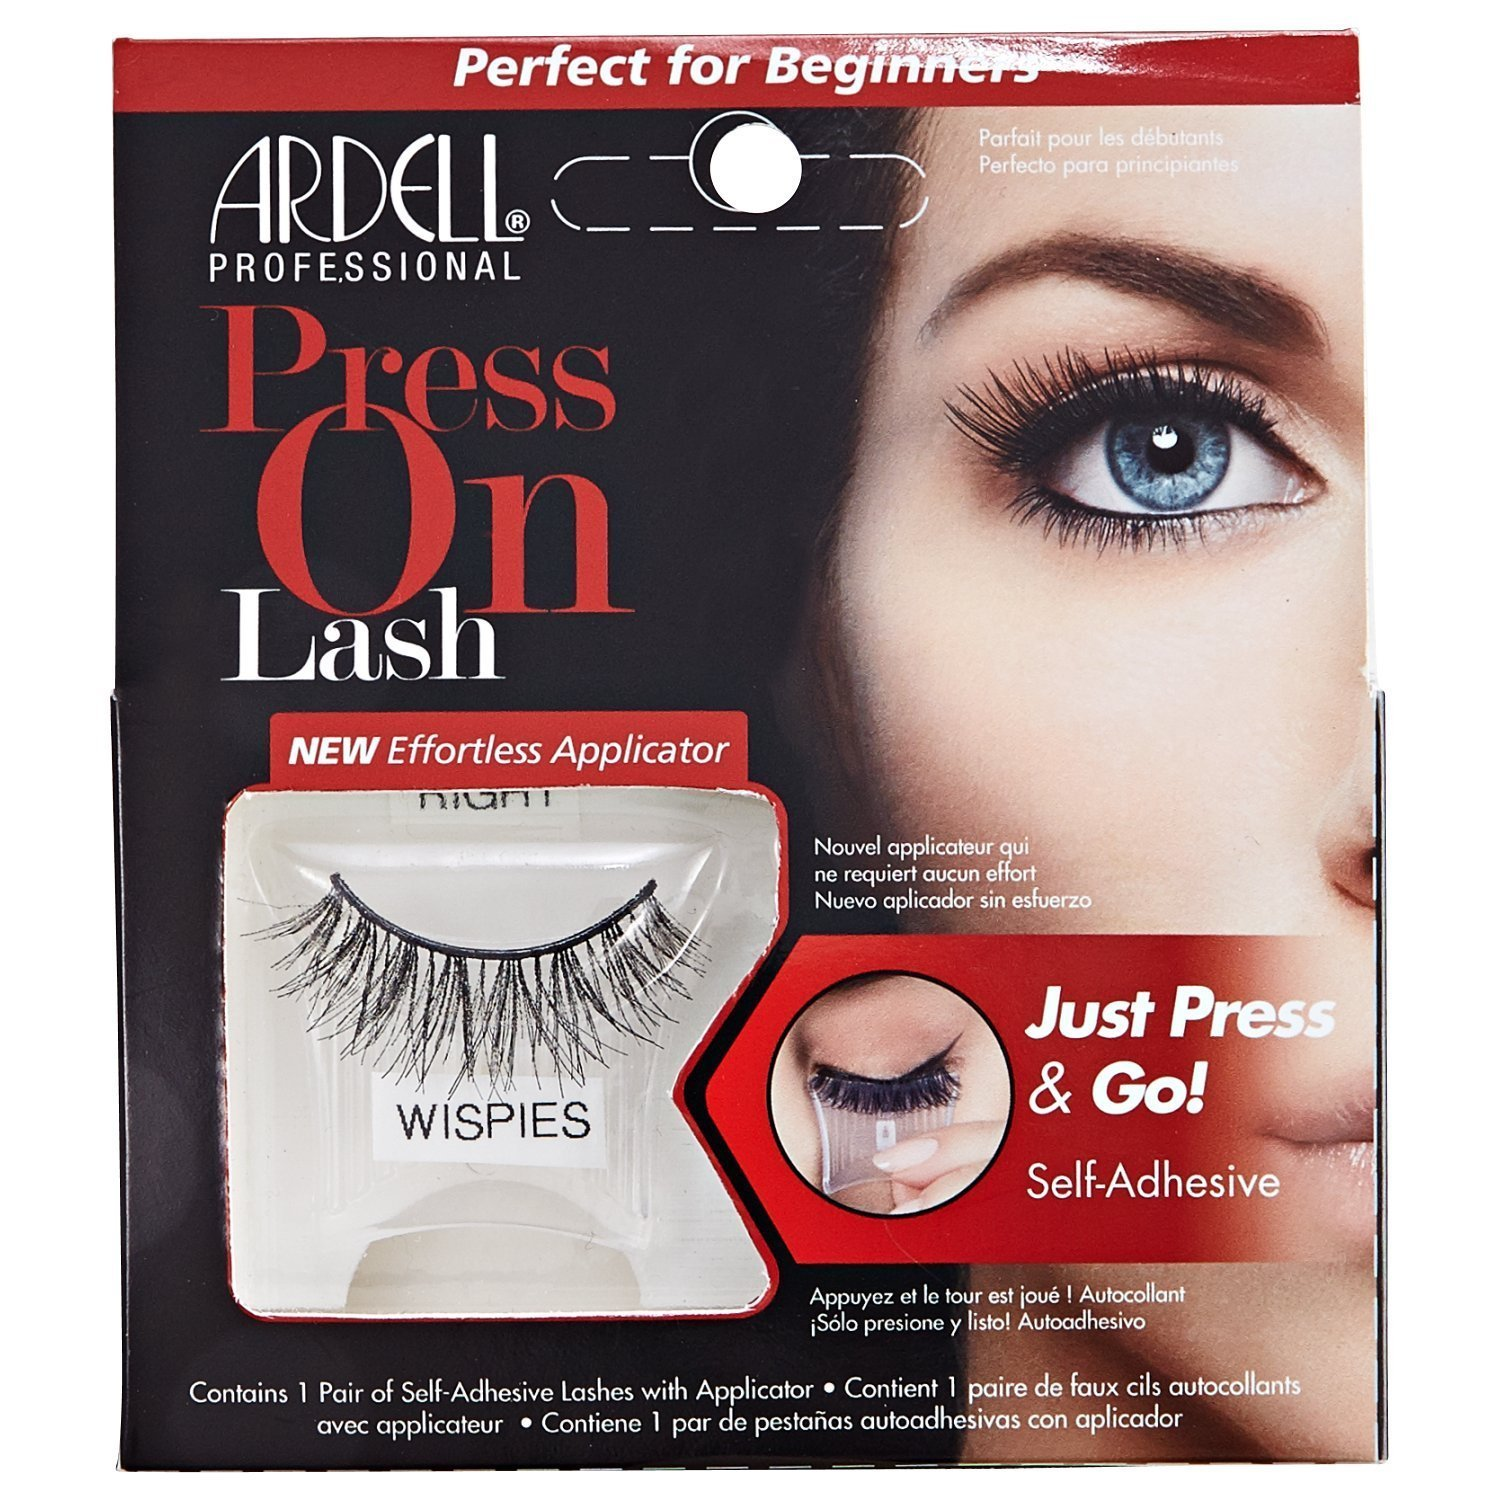 776f3e6b7df ARDELL Press On Lash Self-Adhesive Wispies Eye Lashes, Black: Amazon.co.uk:  Beauty